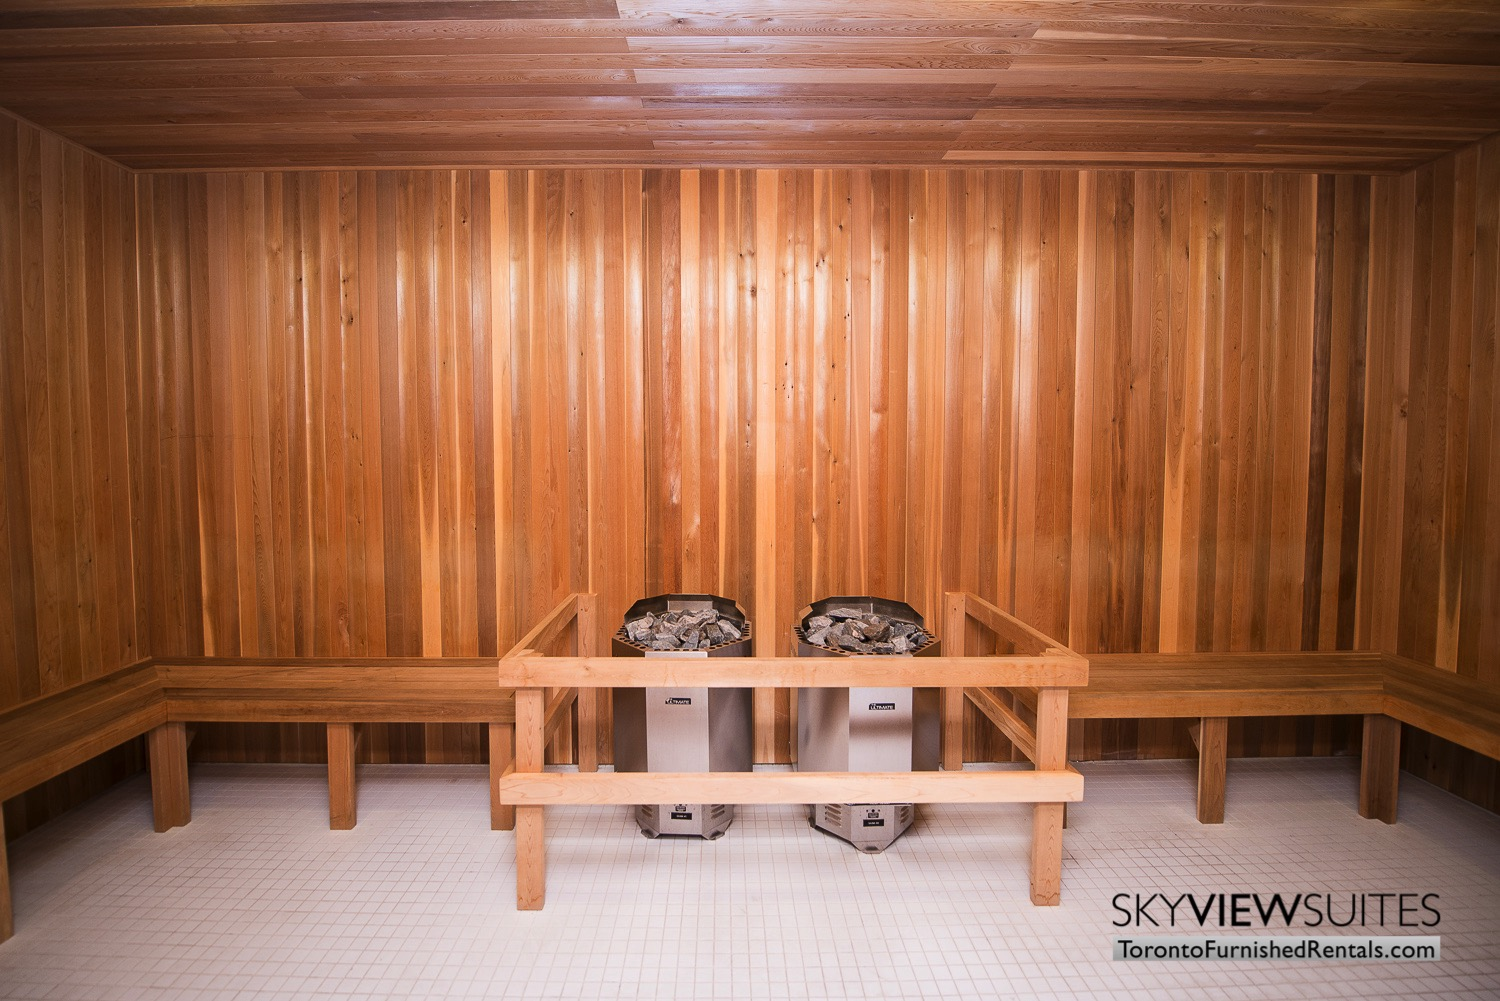 352 Front St. W., Toronto furnished rental sauna